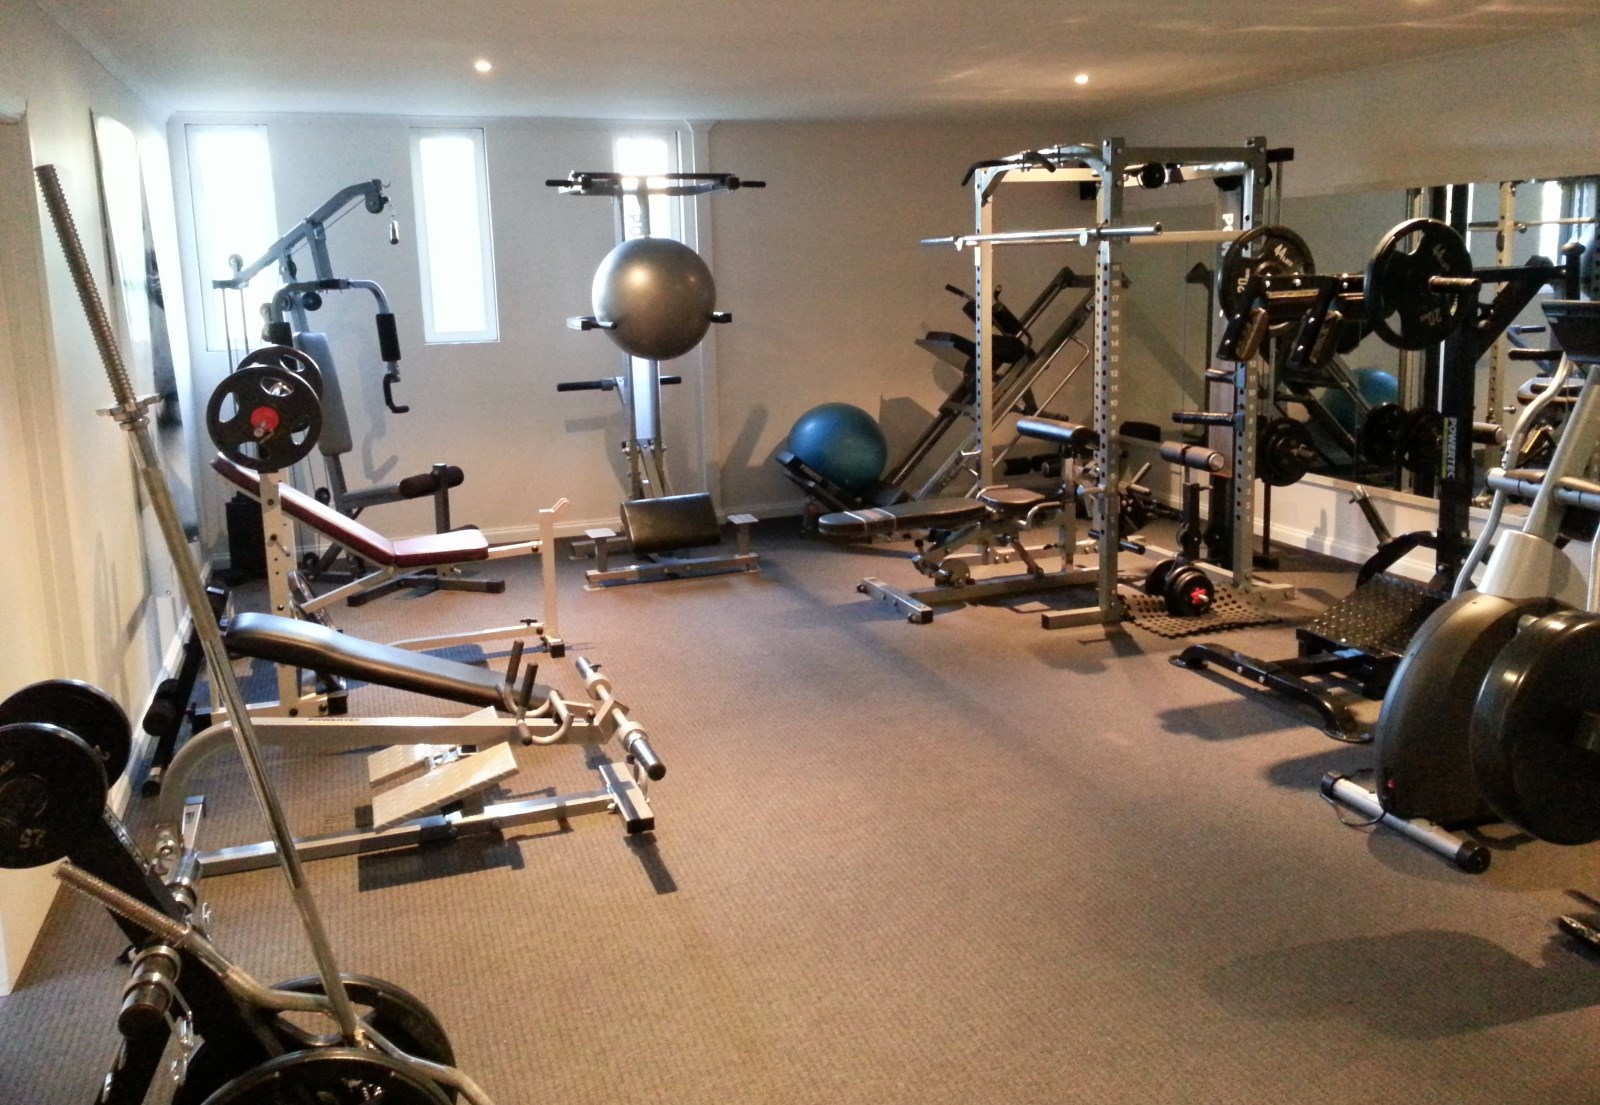 Cons tasmanian home gym - Images of home gyms ...